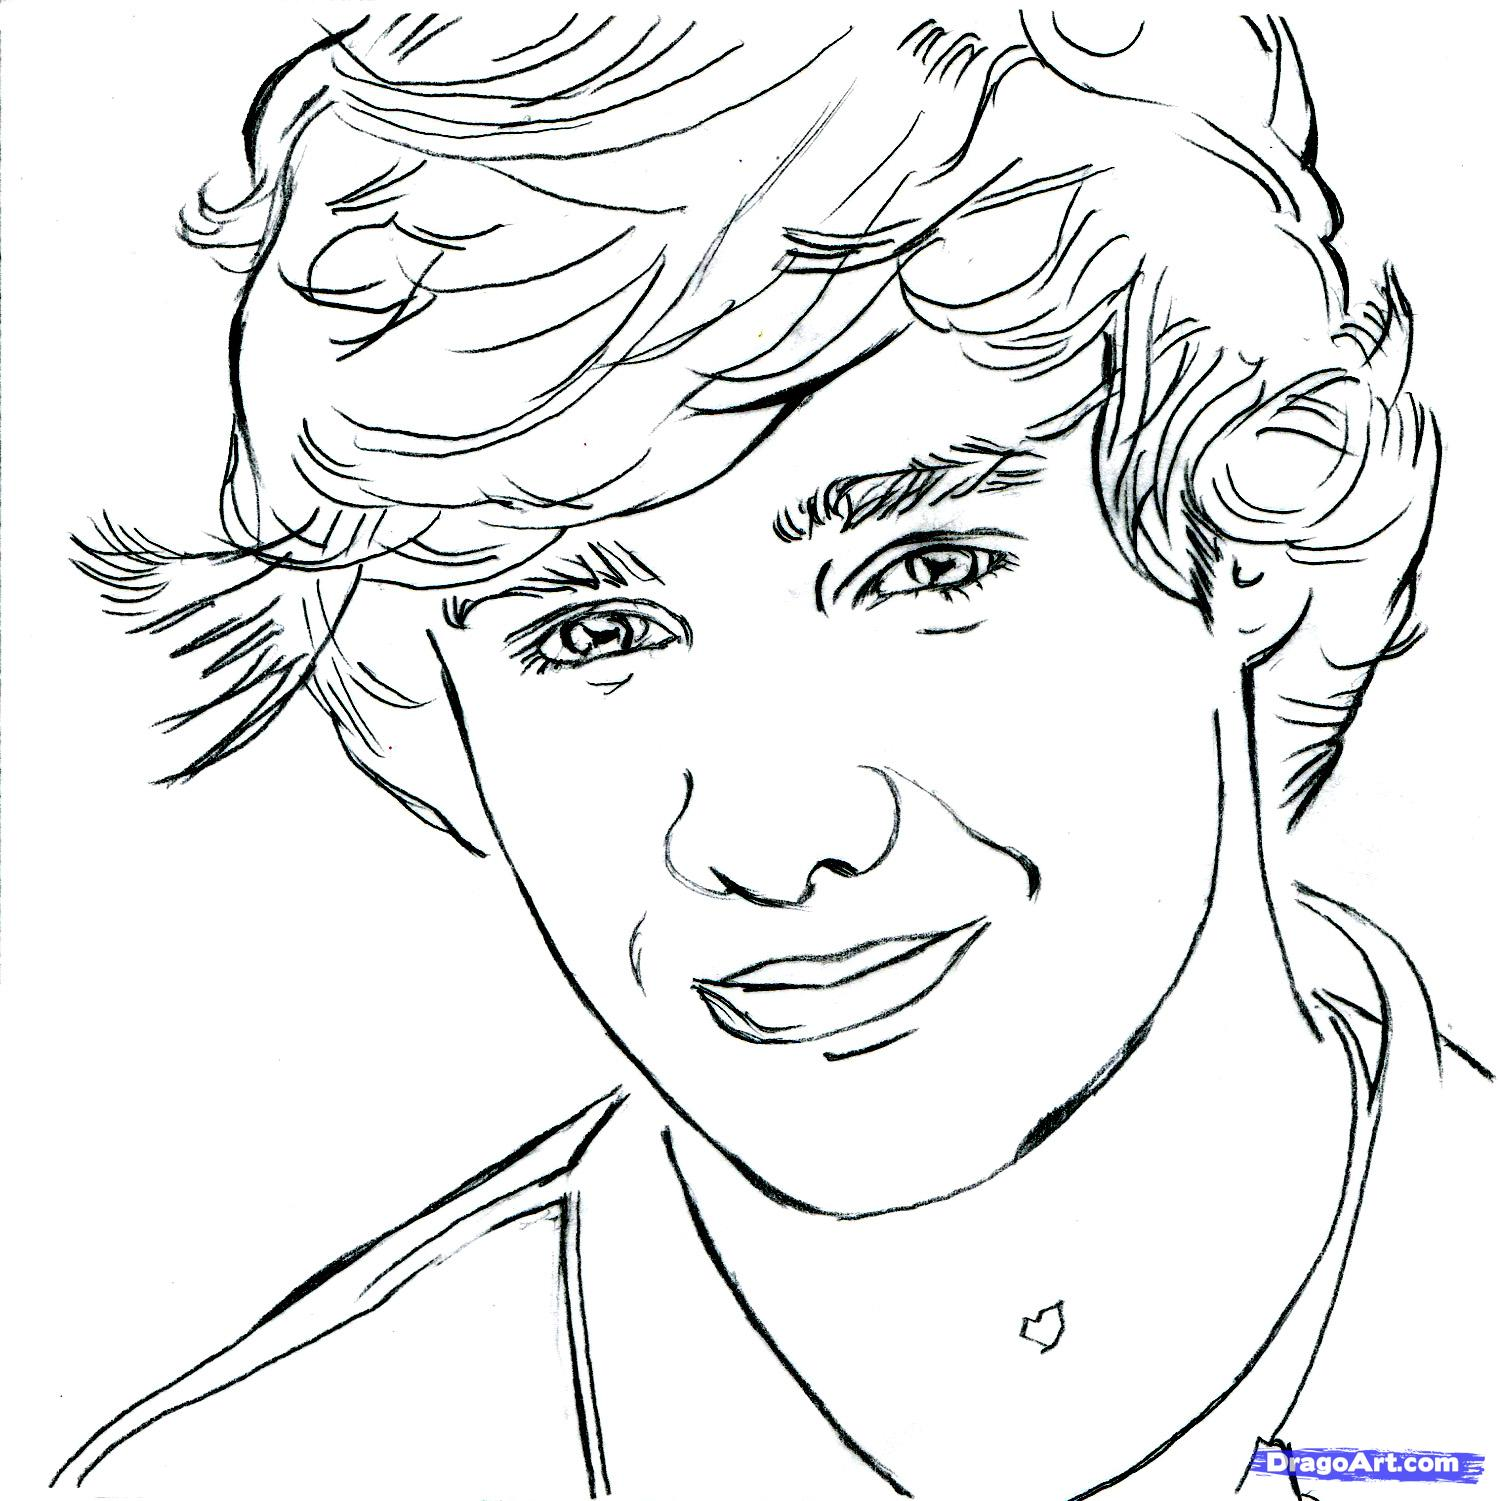 1500x1501 Liam One Direction Drawings Step 10 How To Draw Liam Payne Liam